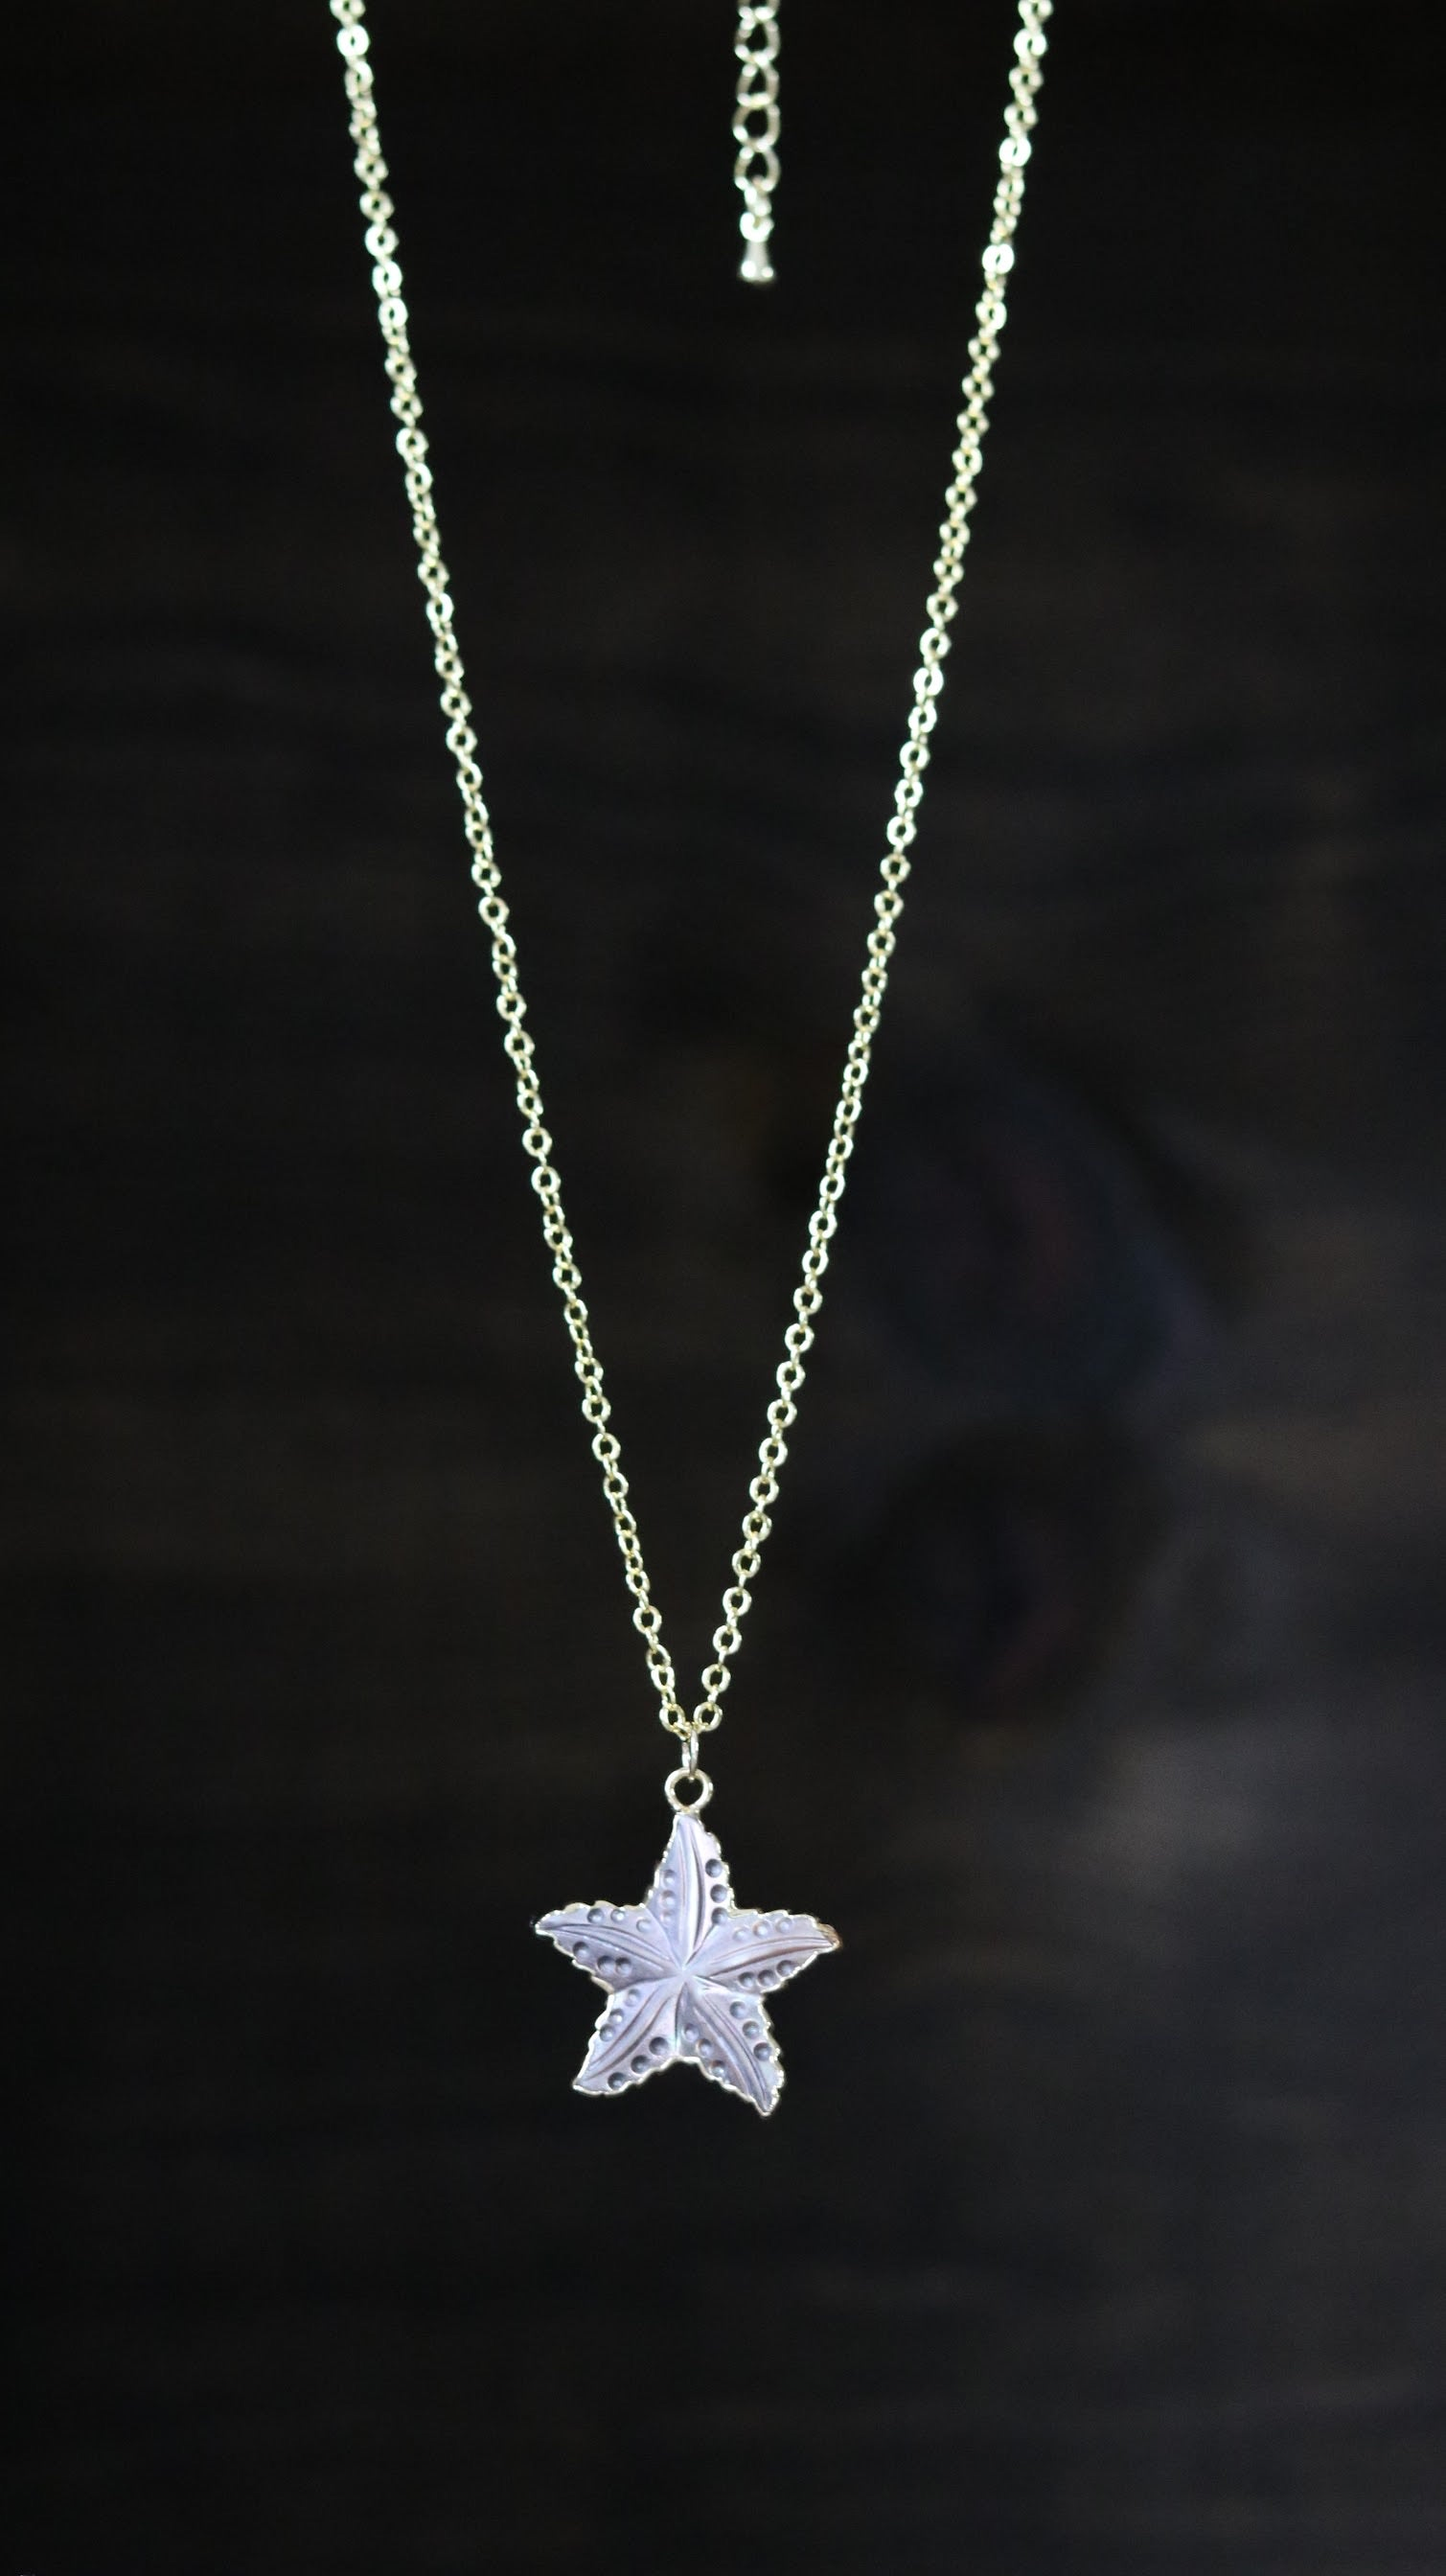 Light brown carved starfish necklace